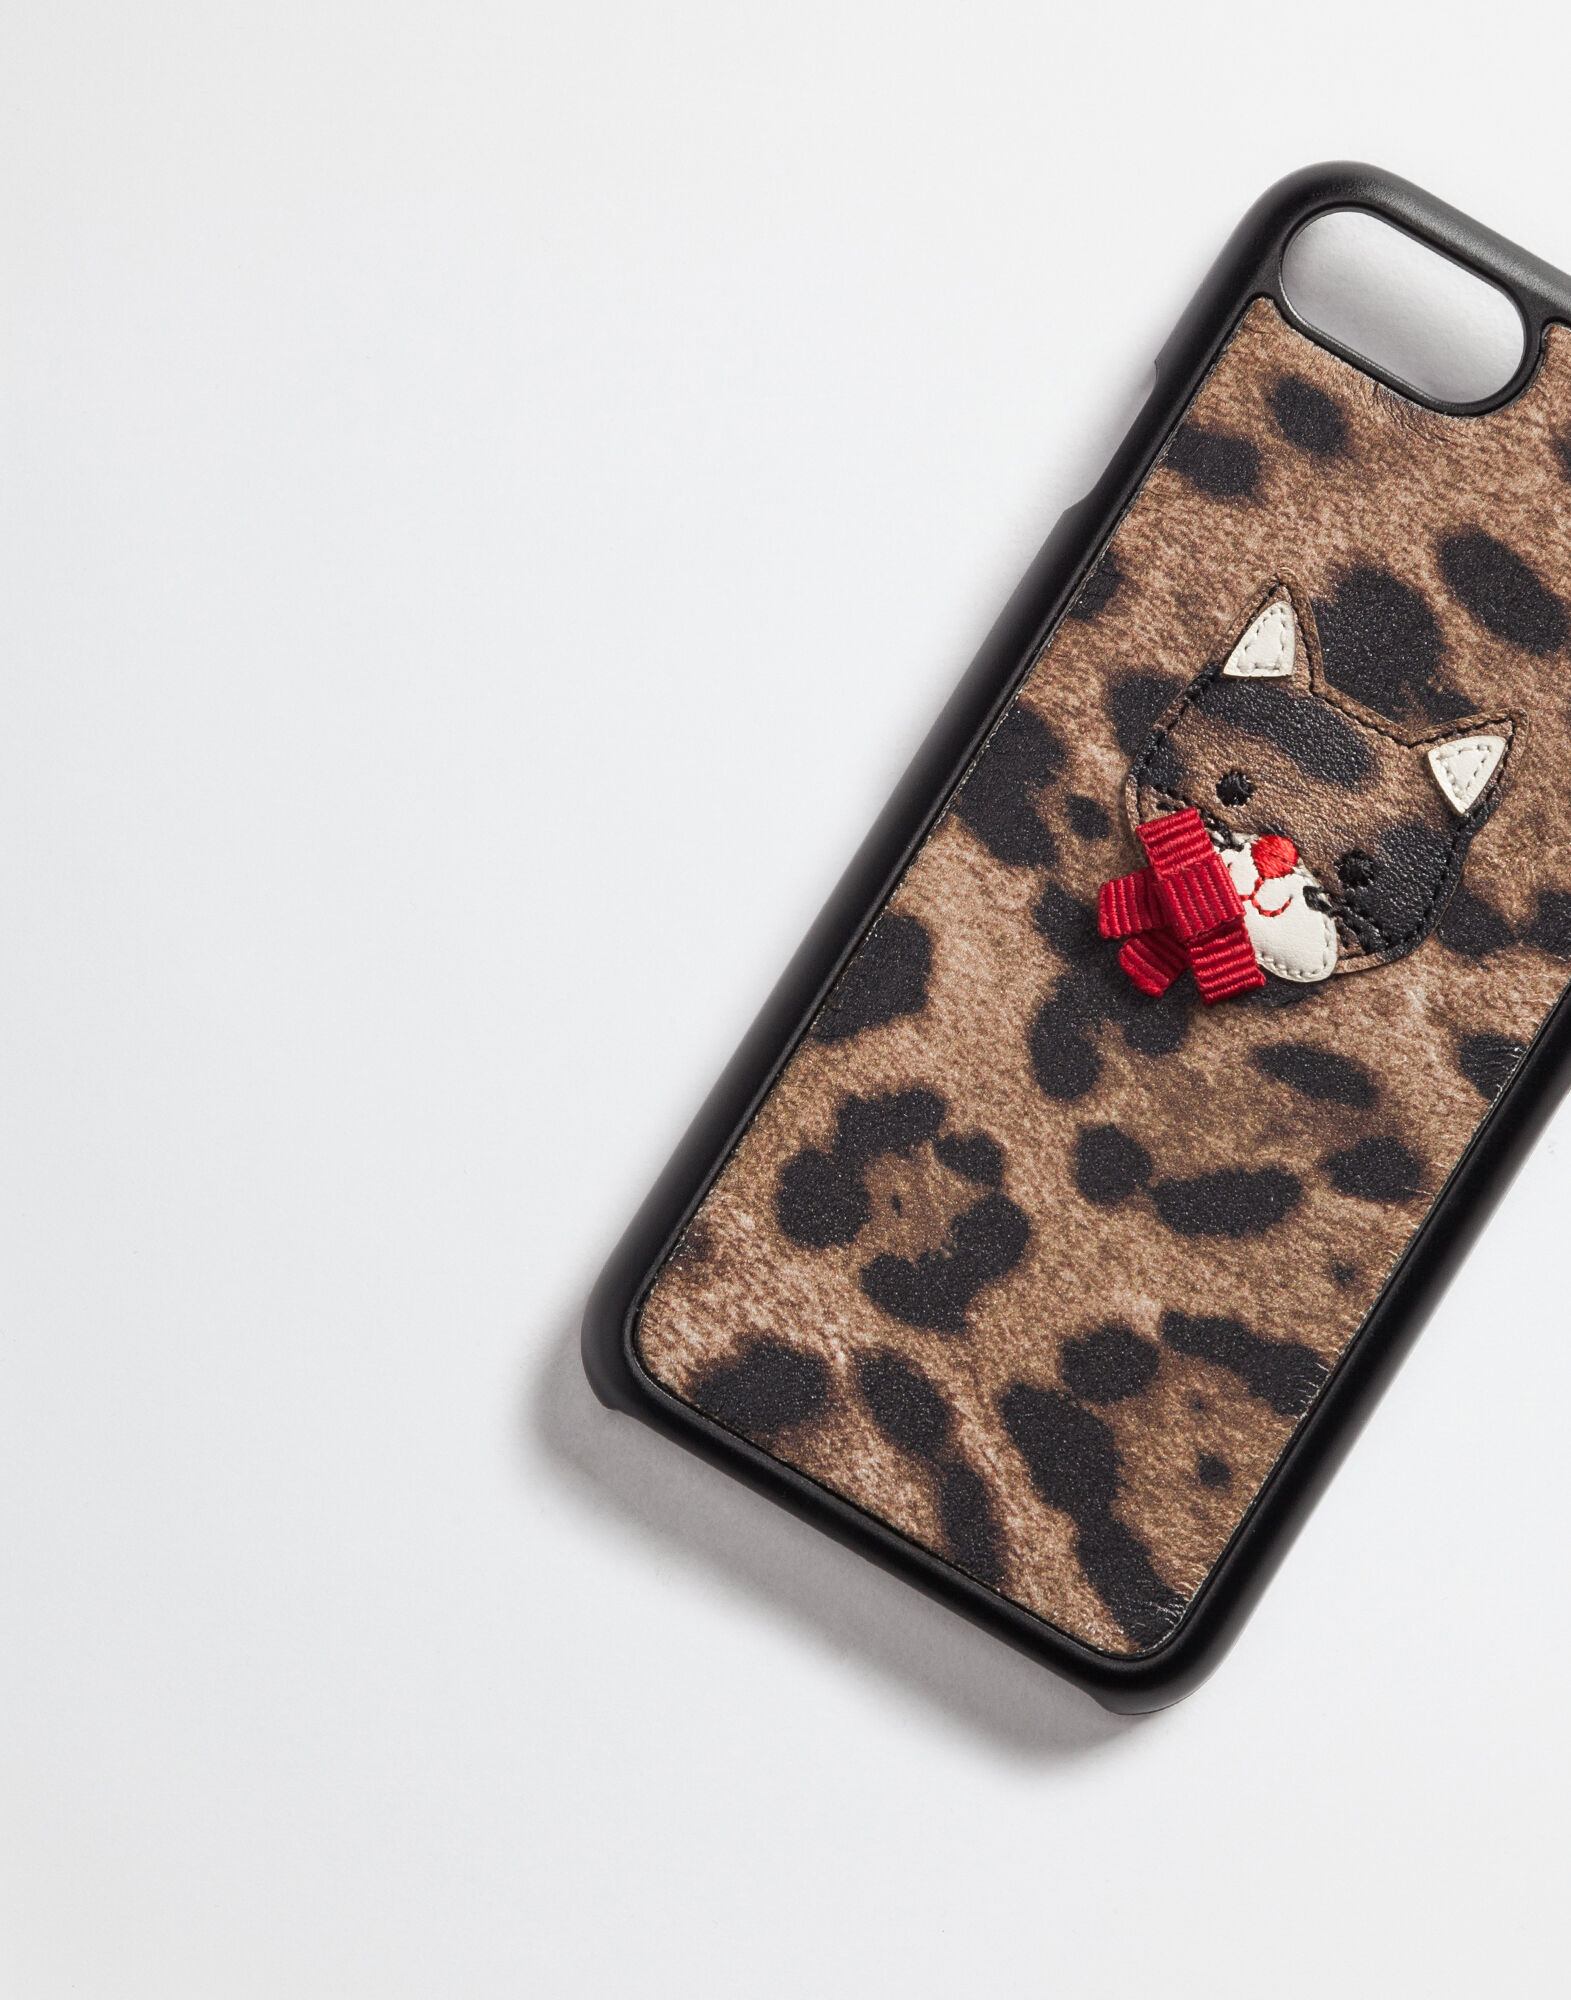 PRINTED LEATHER IPHONE 7 COVER WITH PATCH